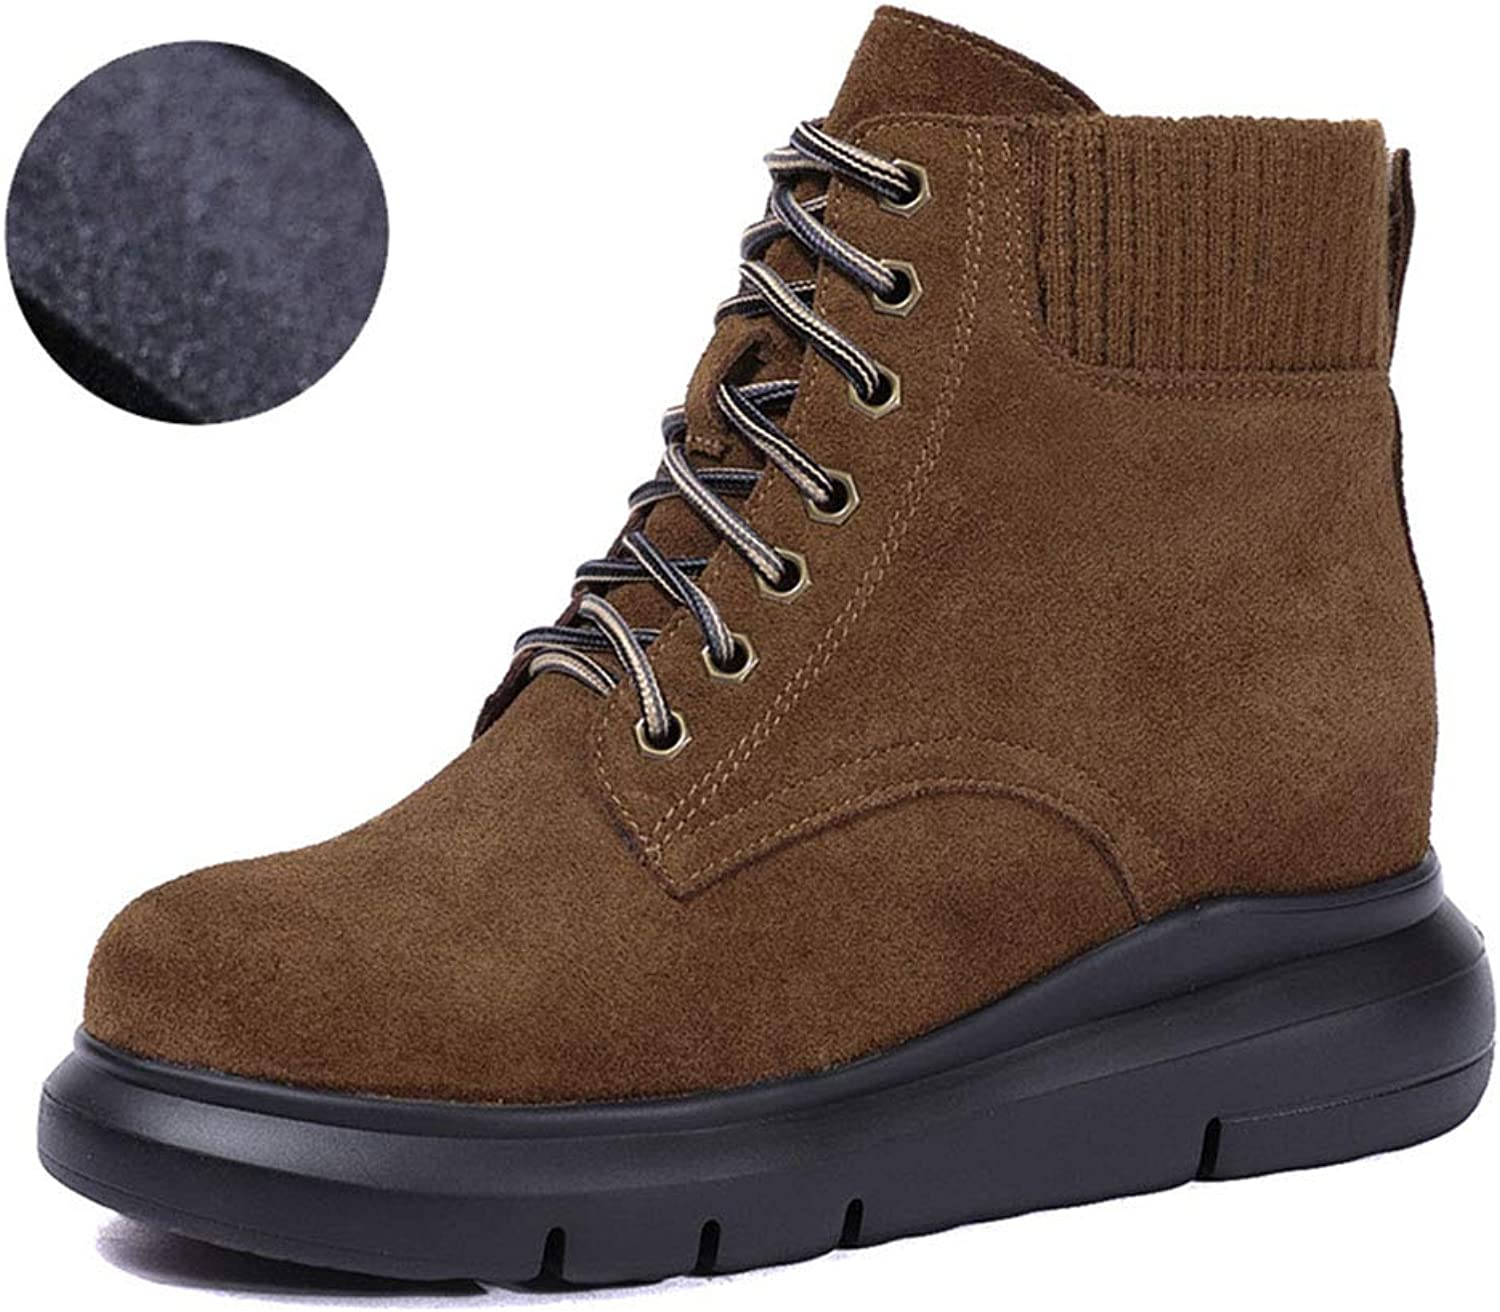 Women's Booties, Autumn Winter New Leather Martin Boots Thick-Soled Warm Snow Boots Increased Short Boots Women's Single Boots Casual Women's Boots (color   C, Size   39)